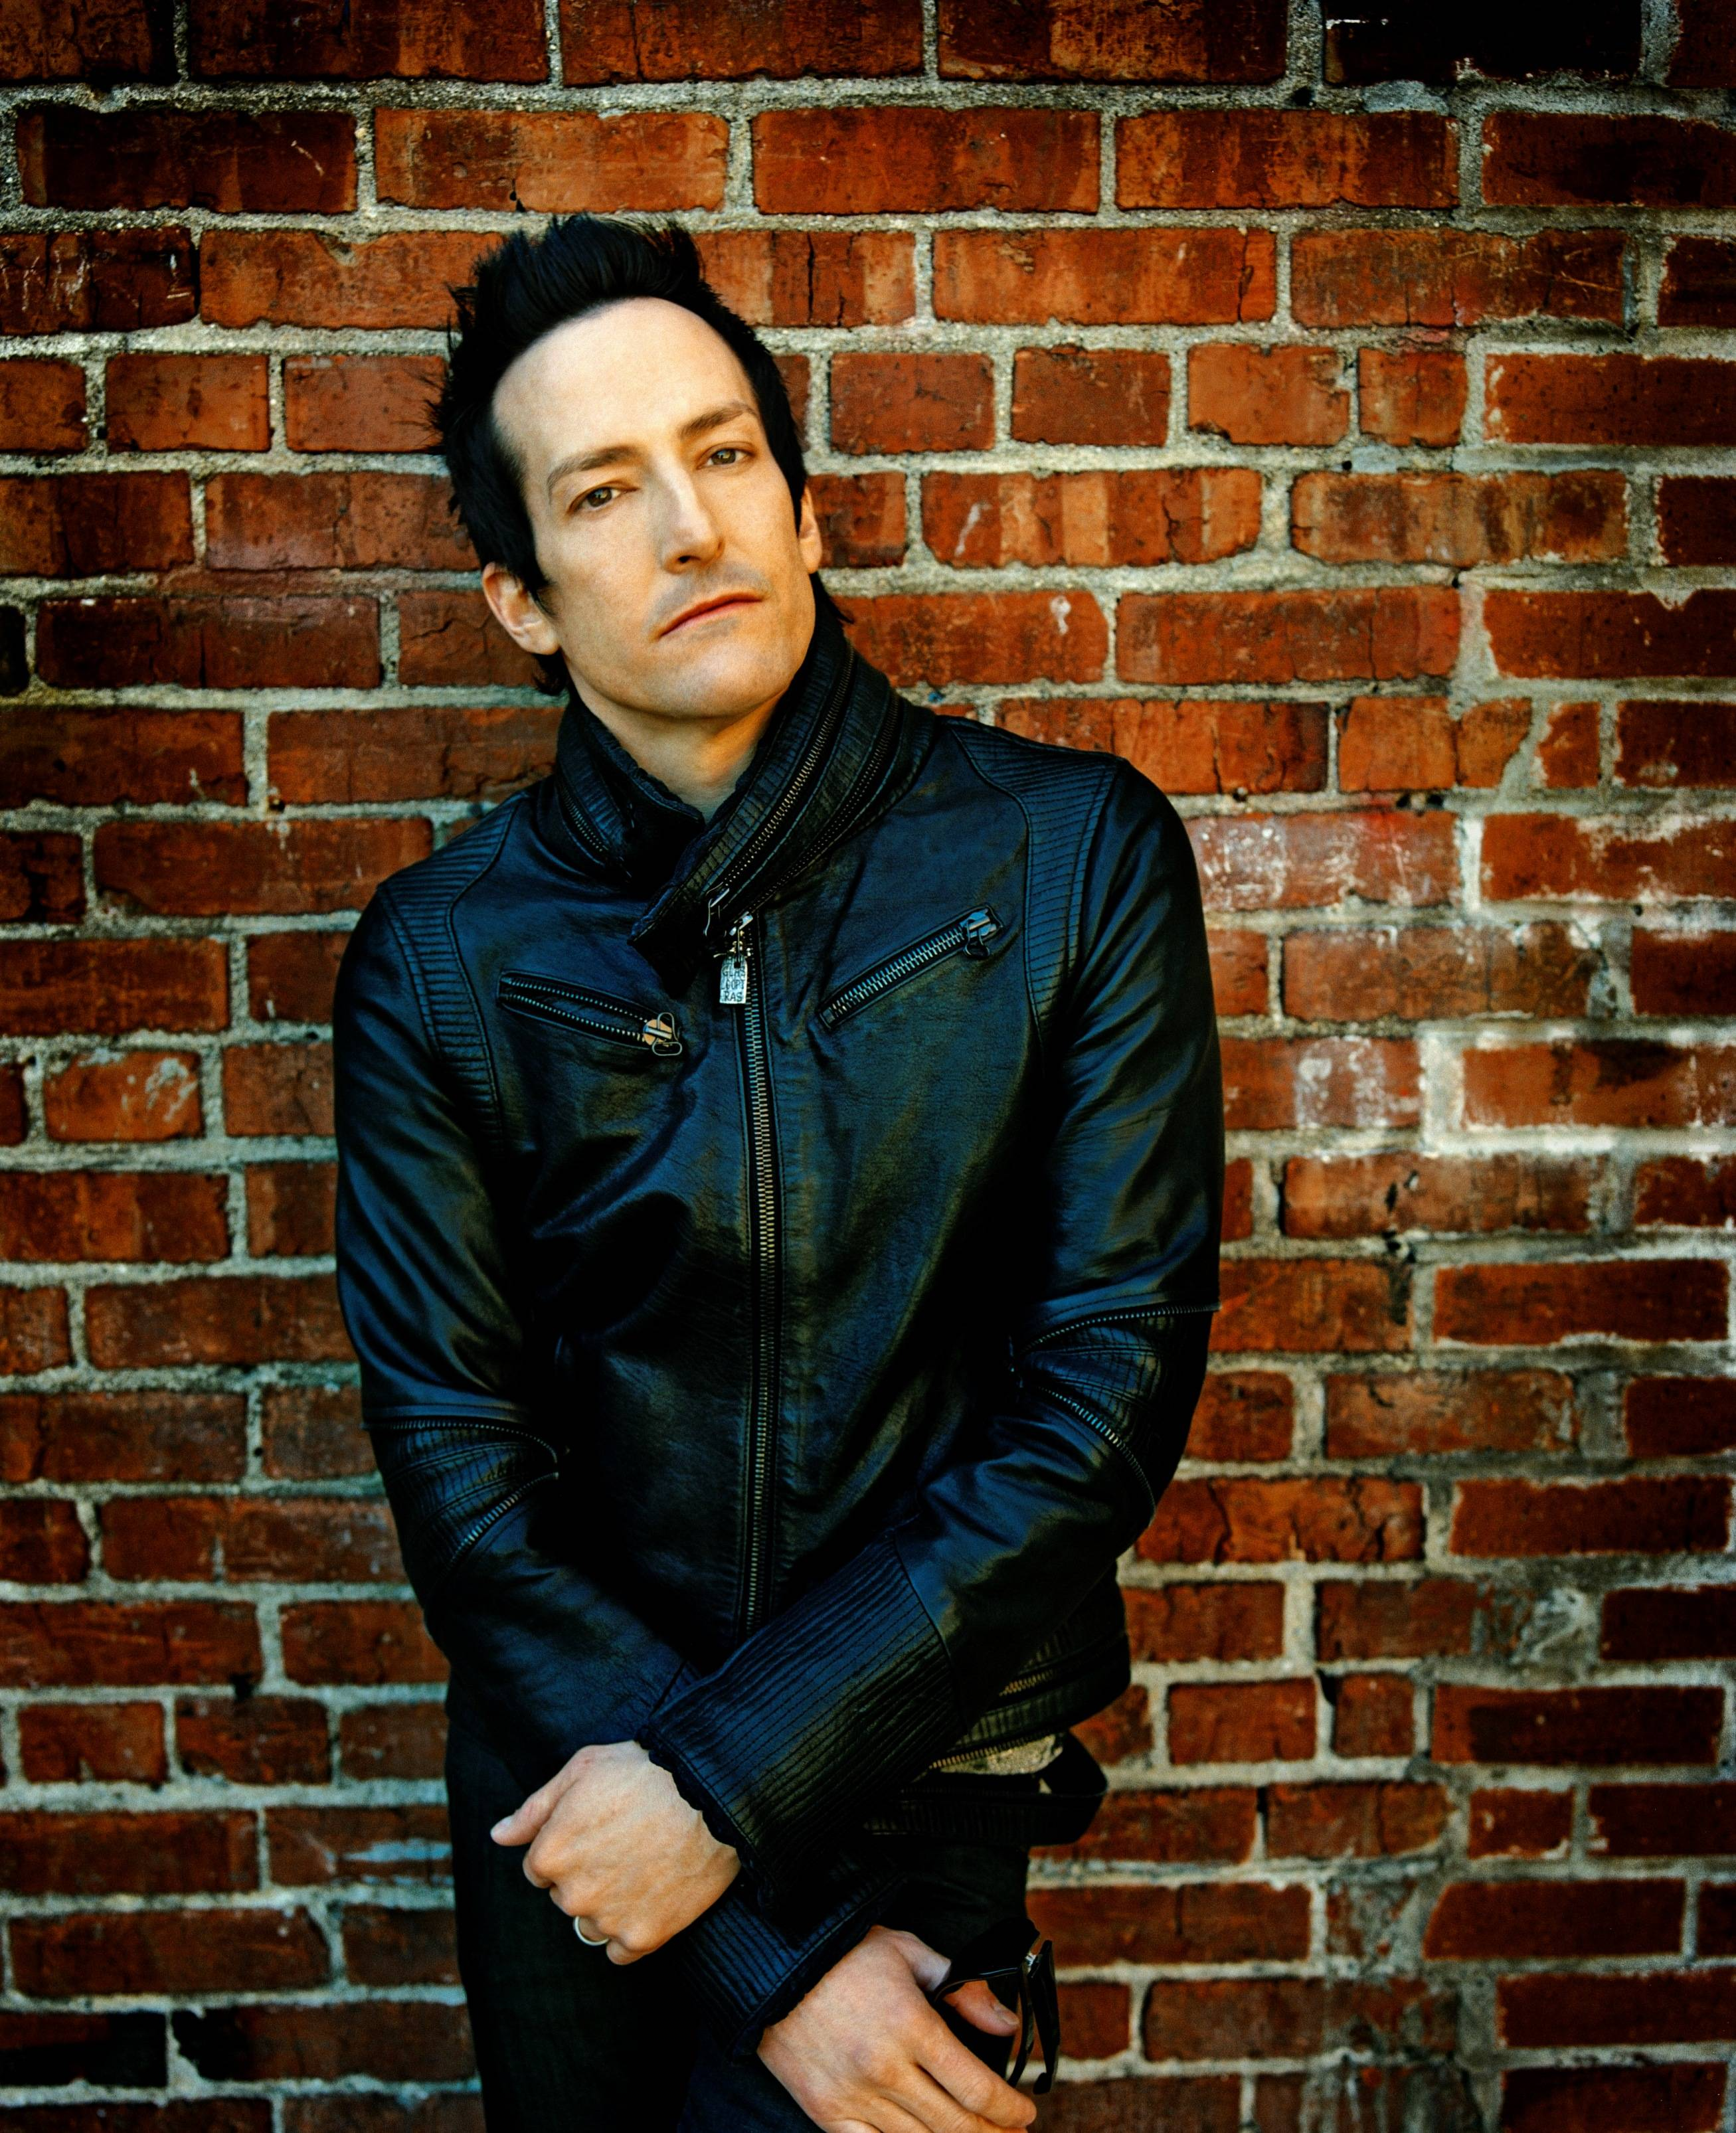 Richard Patrick brings the latest reincarnation of his band Filter to a Taste of Lombard on Saturday night.